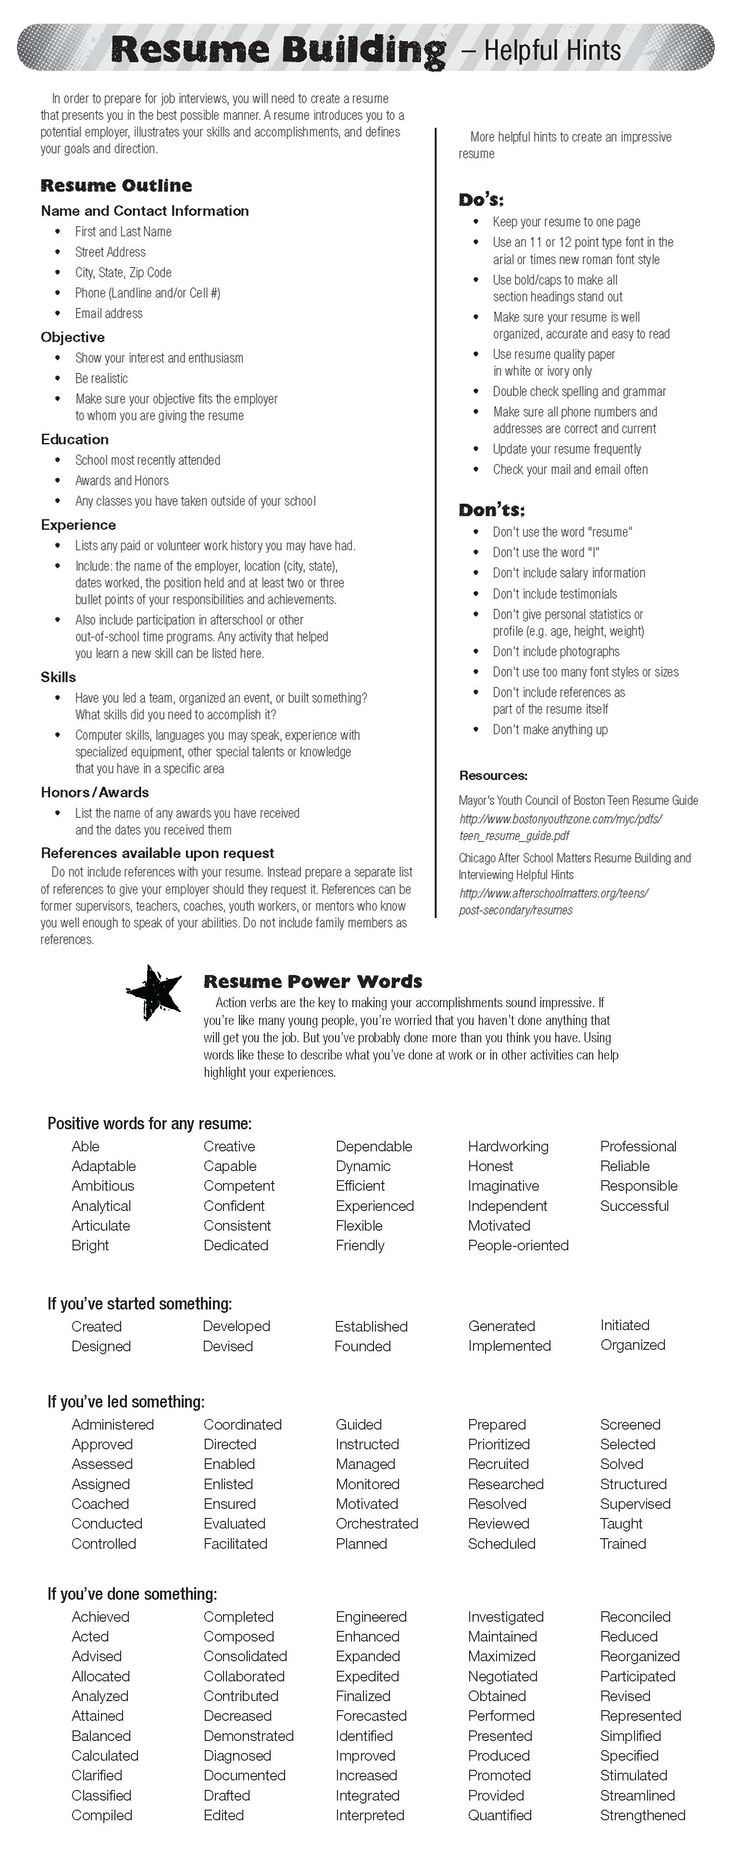 Opposenewapstandardsus  Pretty  Ideas About Resume On Pinterest  Cv Format Resume  With Extraordinary Check Out Todays Resume Building Tips Resume Resumepowerwords With Cute Resume For Front Desk Also On Error Resume Next Vbscript In Addition Words To Put On A Resume And Logistics Specialist Resume As Well As Business Student Resume Additionally Resume For Marketing From Pinterestcom With Opposenewapstandardsus  Extraordinary  Ideas About Resume On Pinterest  Cv Format Resume  With Cute Check Out Todays Resume Building Tips Resume Resumepowerwords And Pretty Resume For Front Desk Also On Error Resume Next Vbscript In Addition Words To Put On A Resume From Pinterestcom